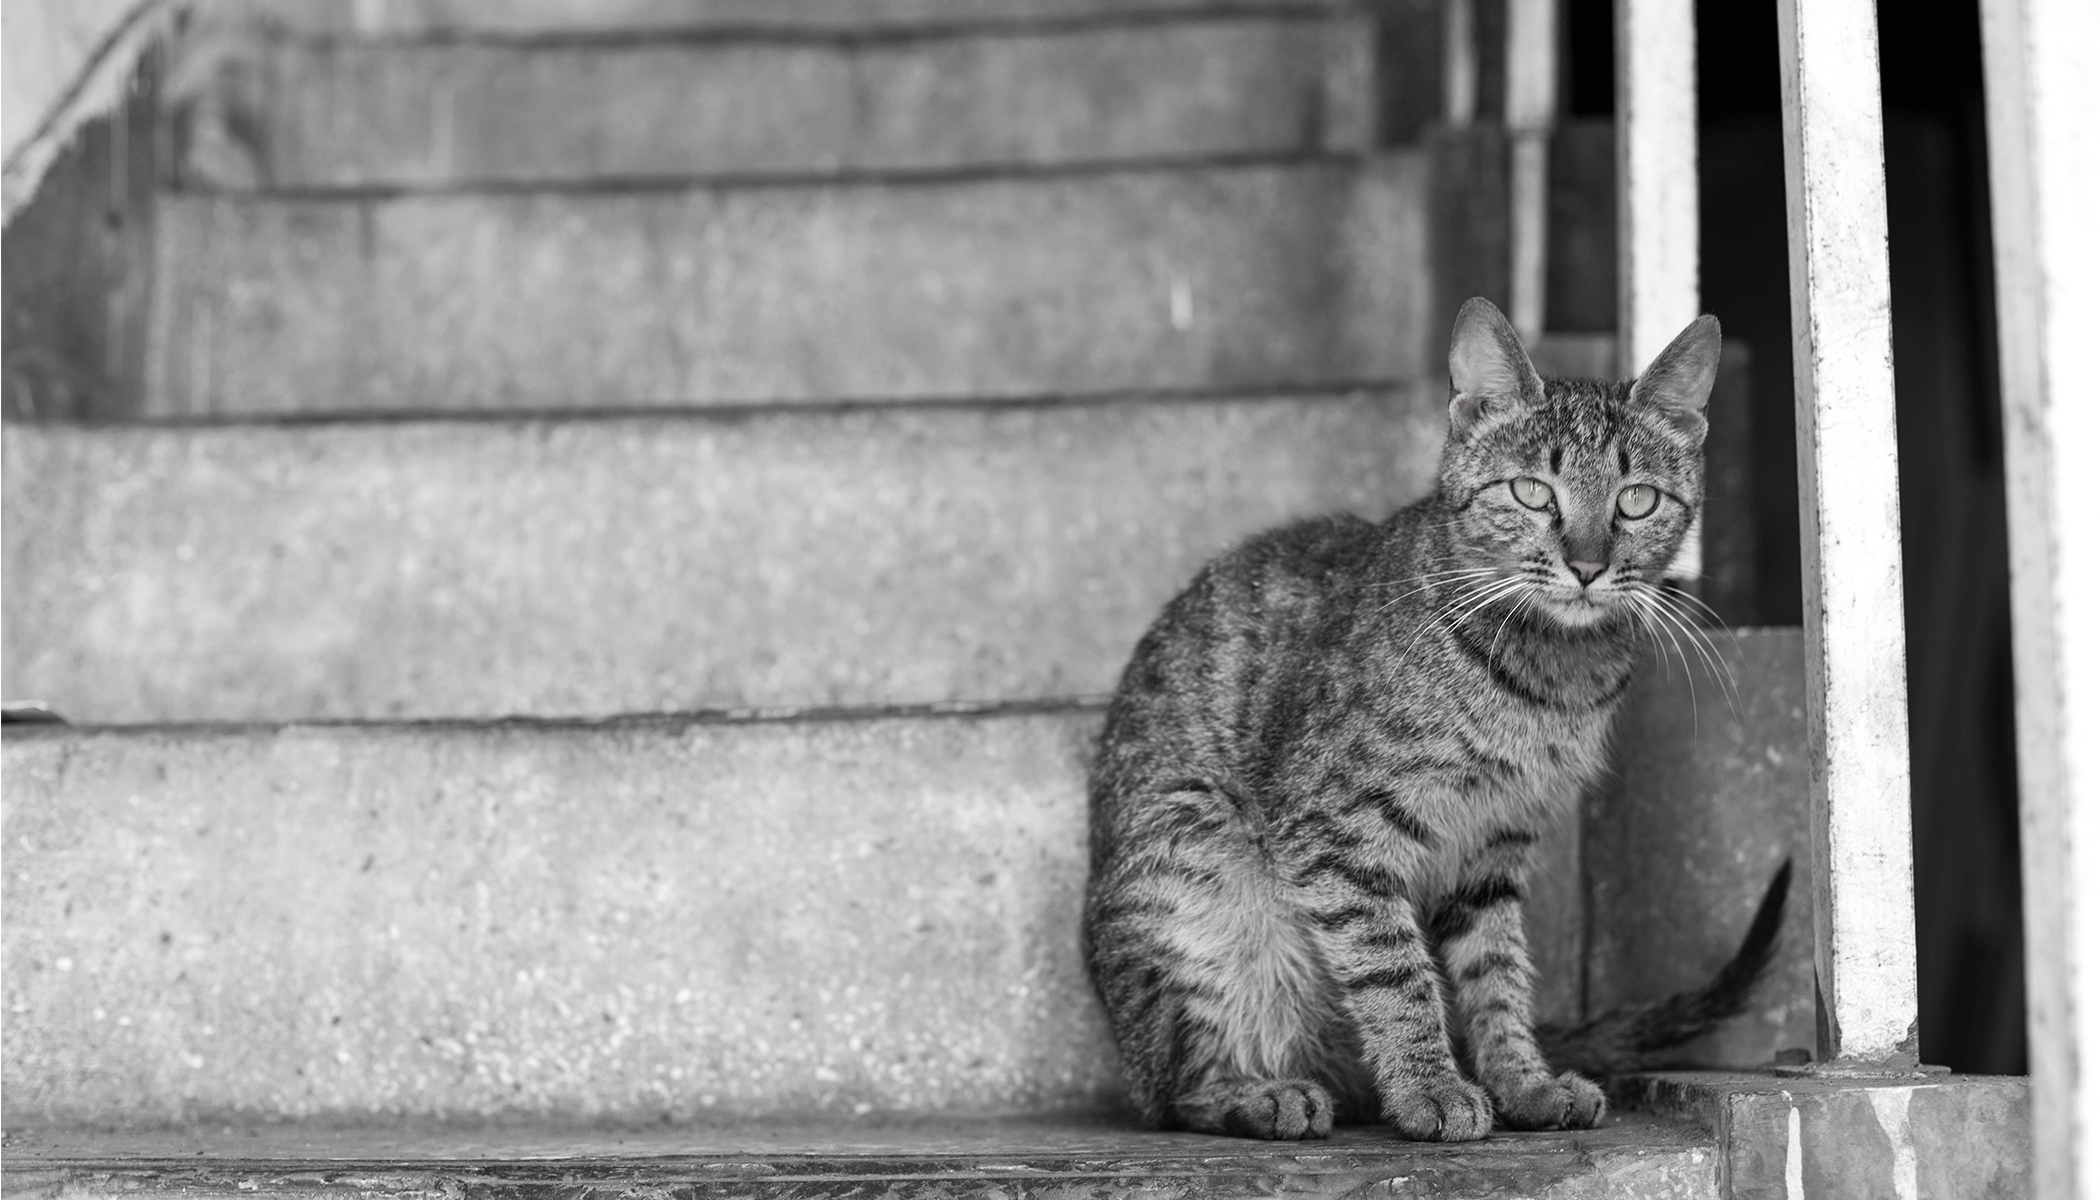 Is This Cat Going Upstairs or Downstairs? This Optical Illusion Has Stumped the Internet